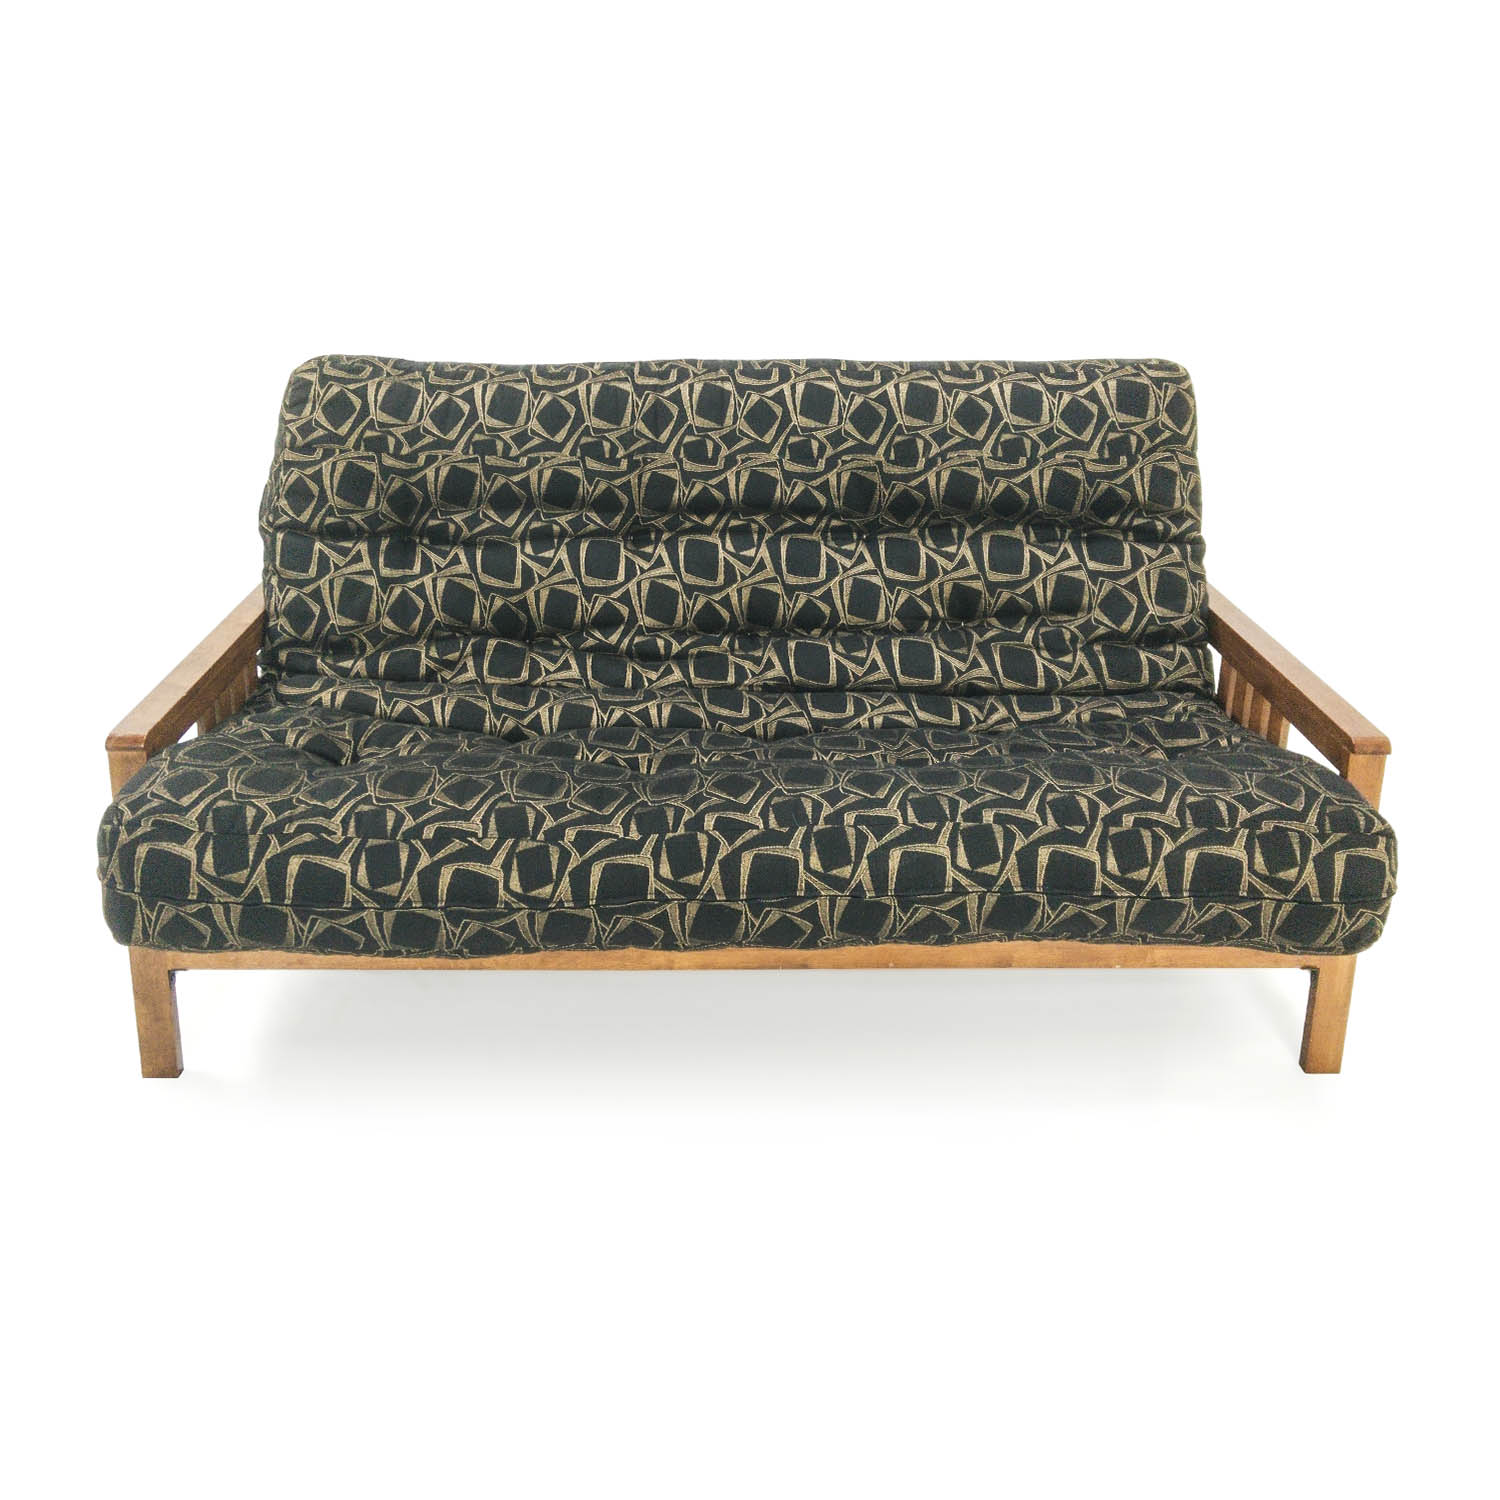 Quality Second Hand Furniture second hand futons | roselawnlutheran